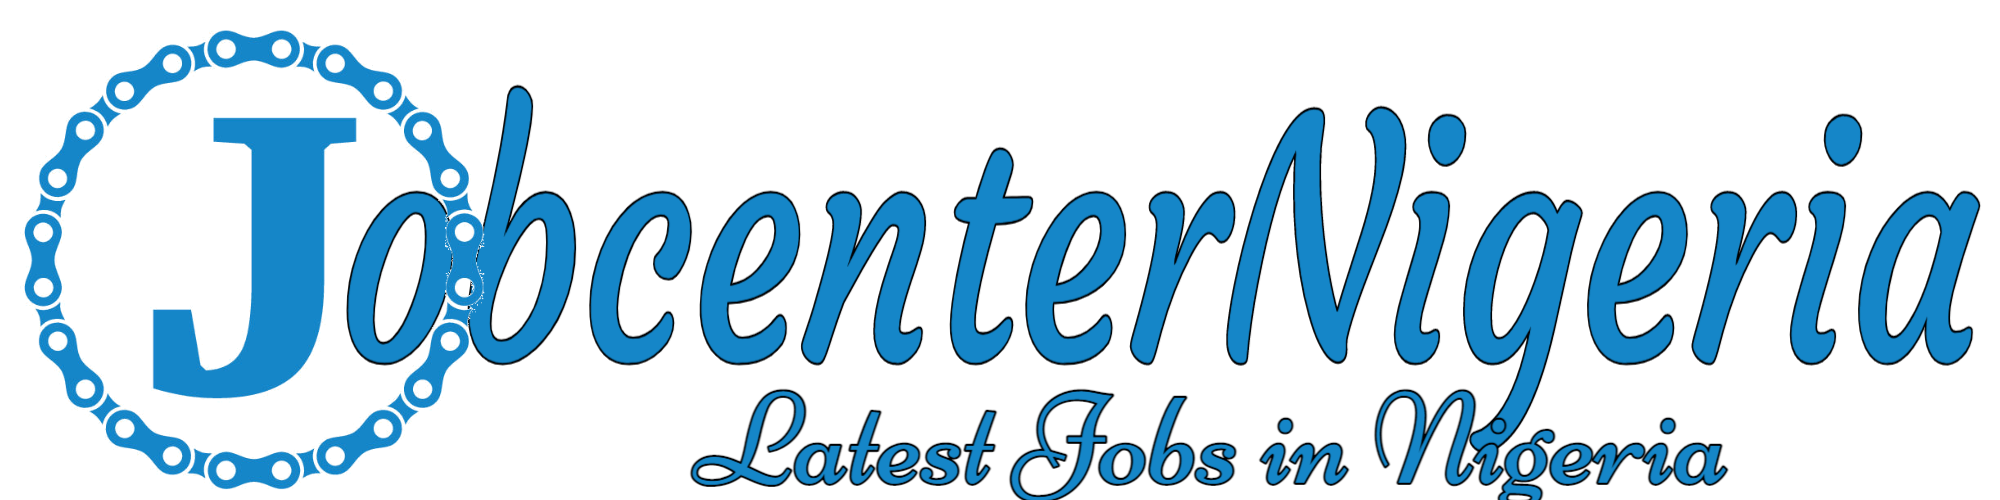 Latest Jobs in Nigeria 2021 – Job Vacancies by JobcenterNigeria